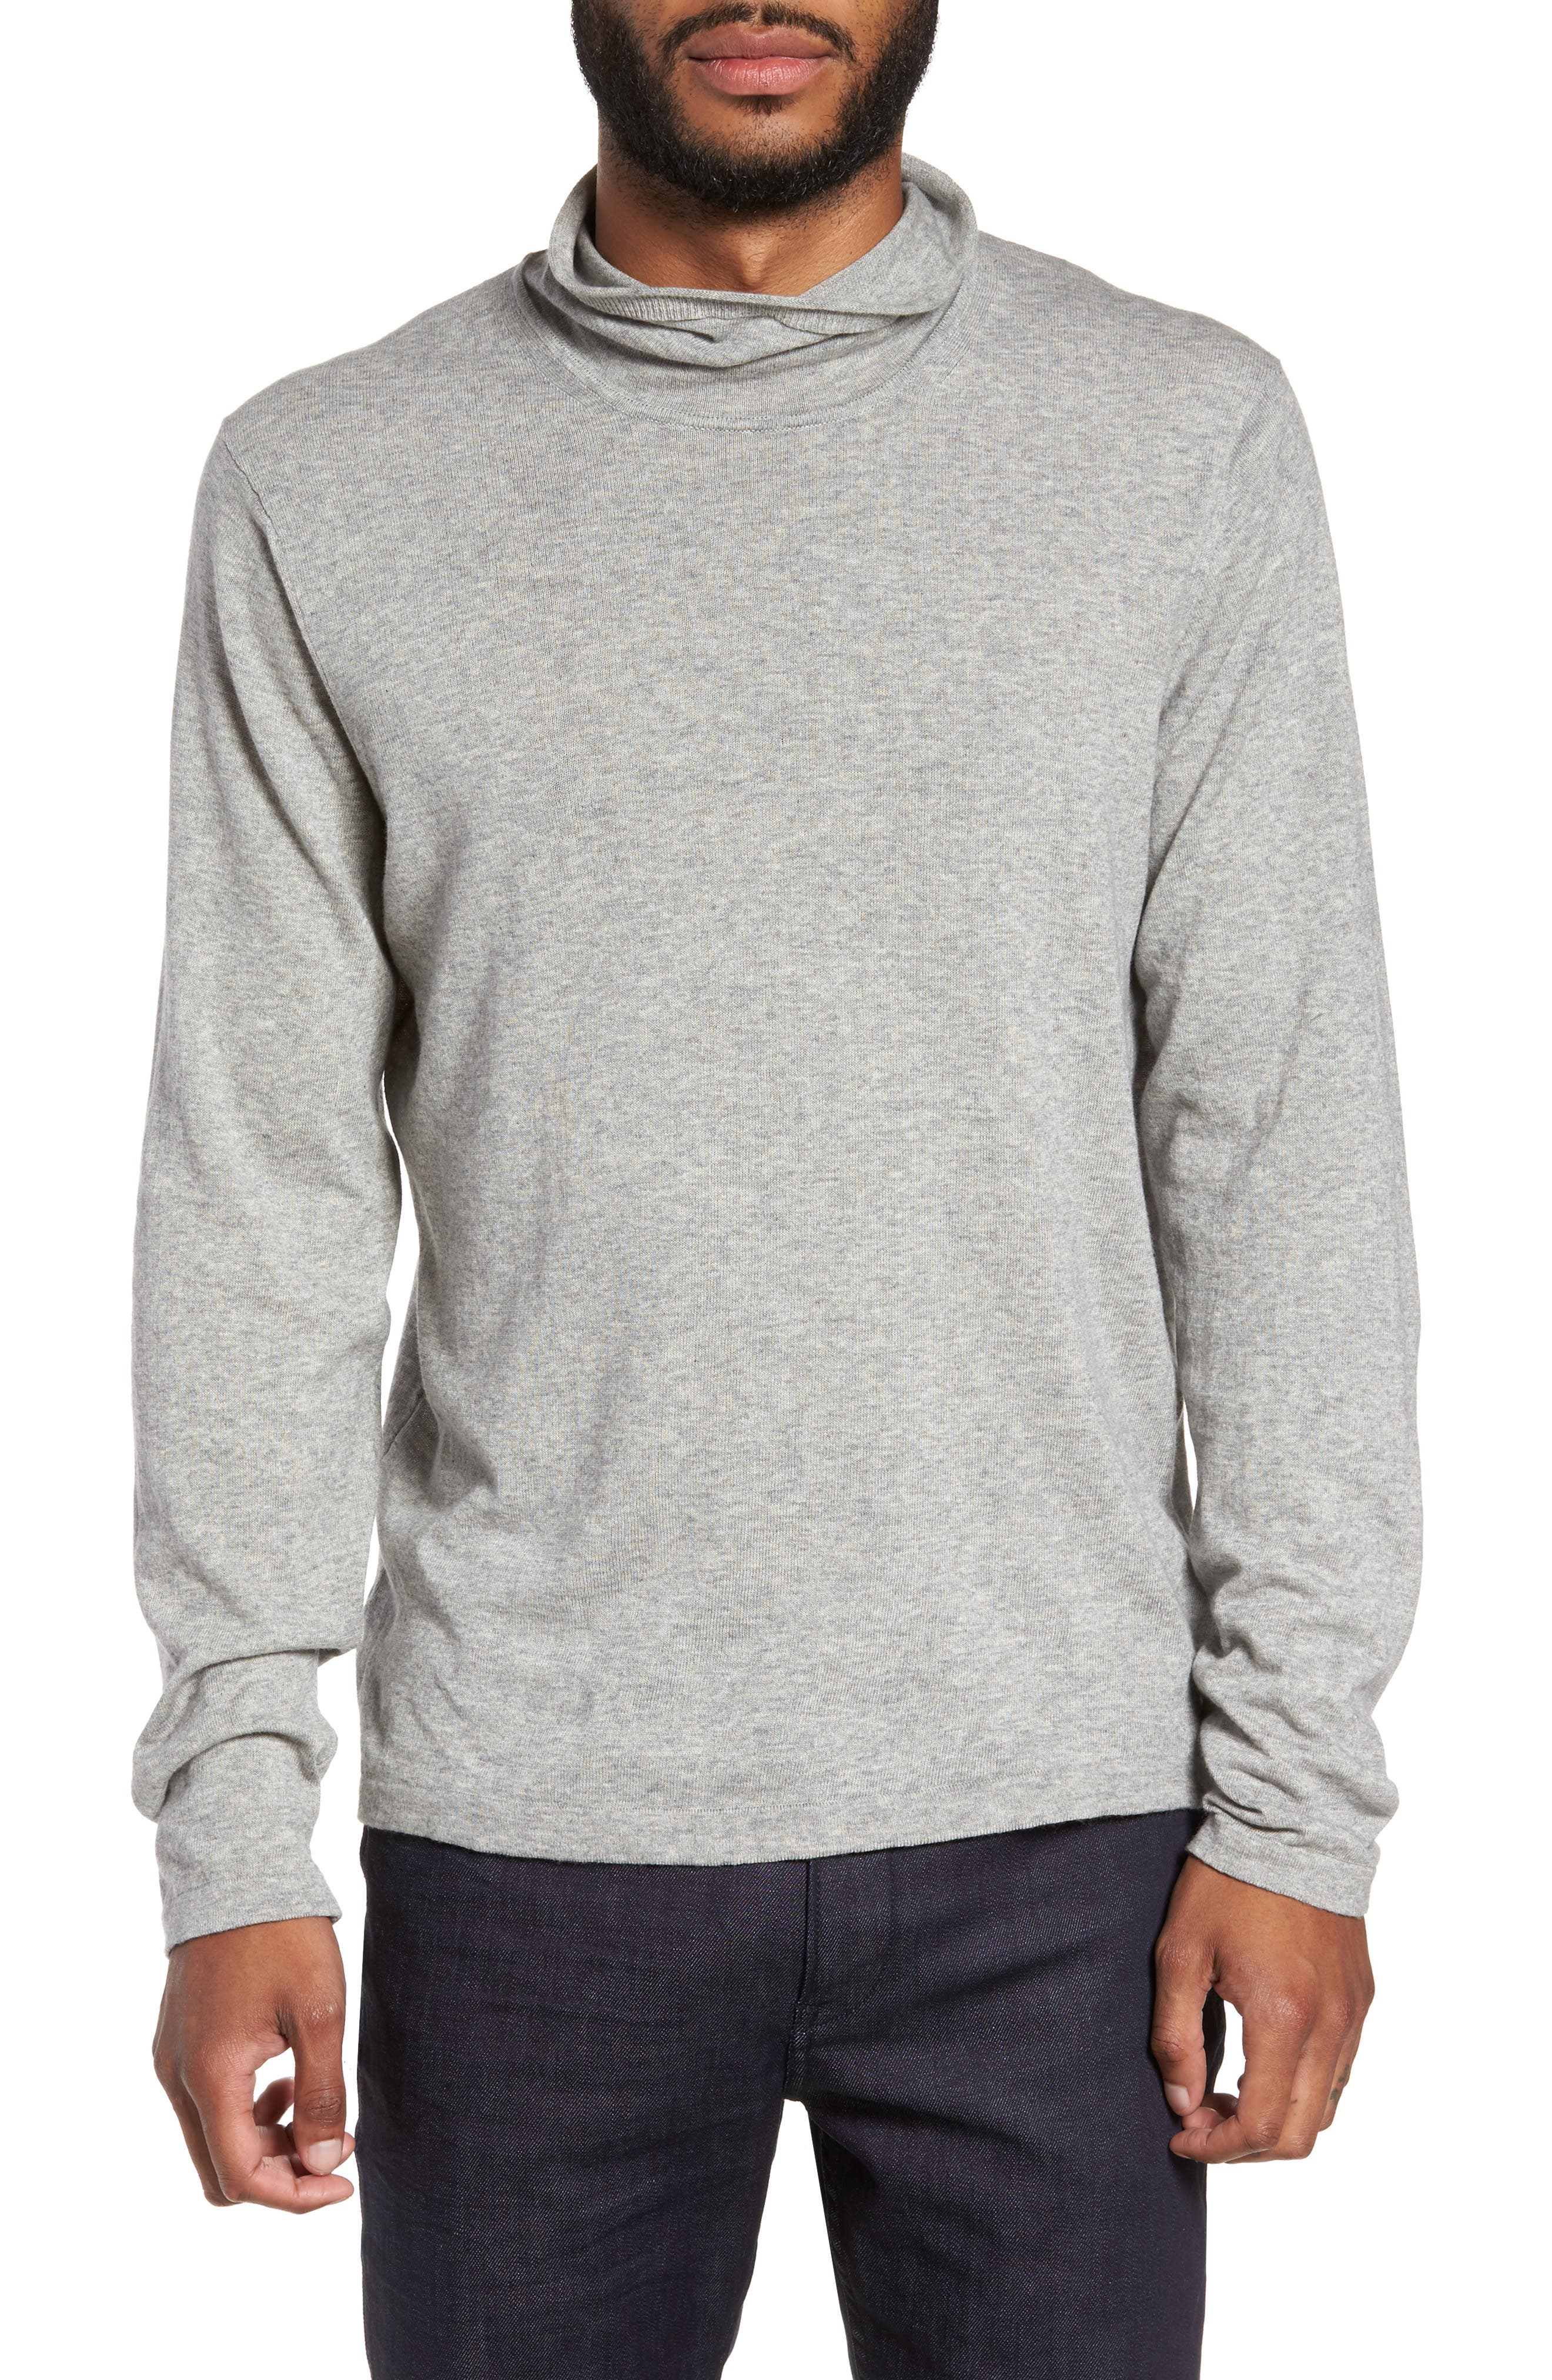 Hess Wool Turtleneck Sweater,                             Main thumbnail 1, color,                             Light Grey